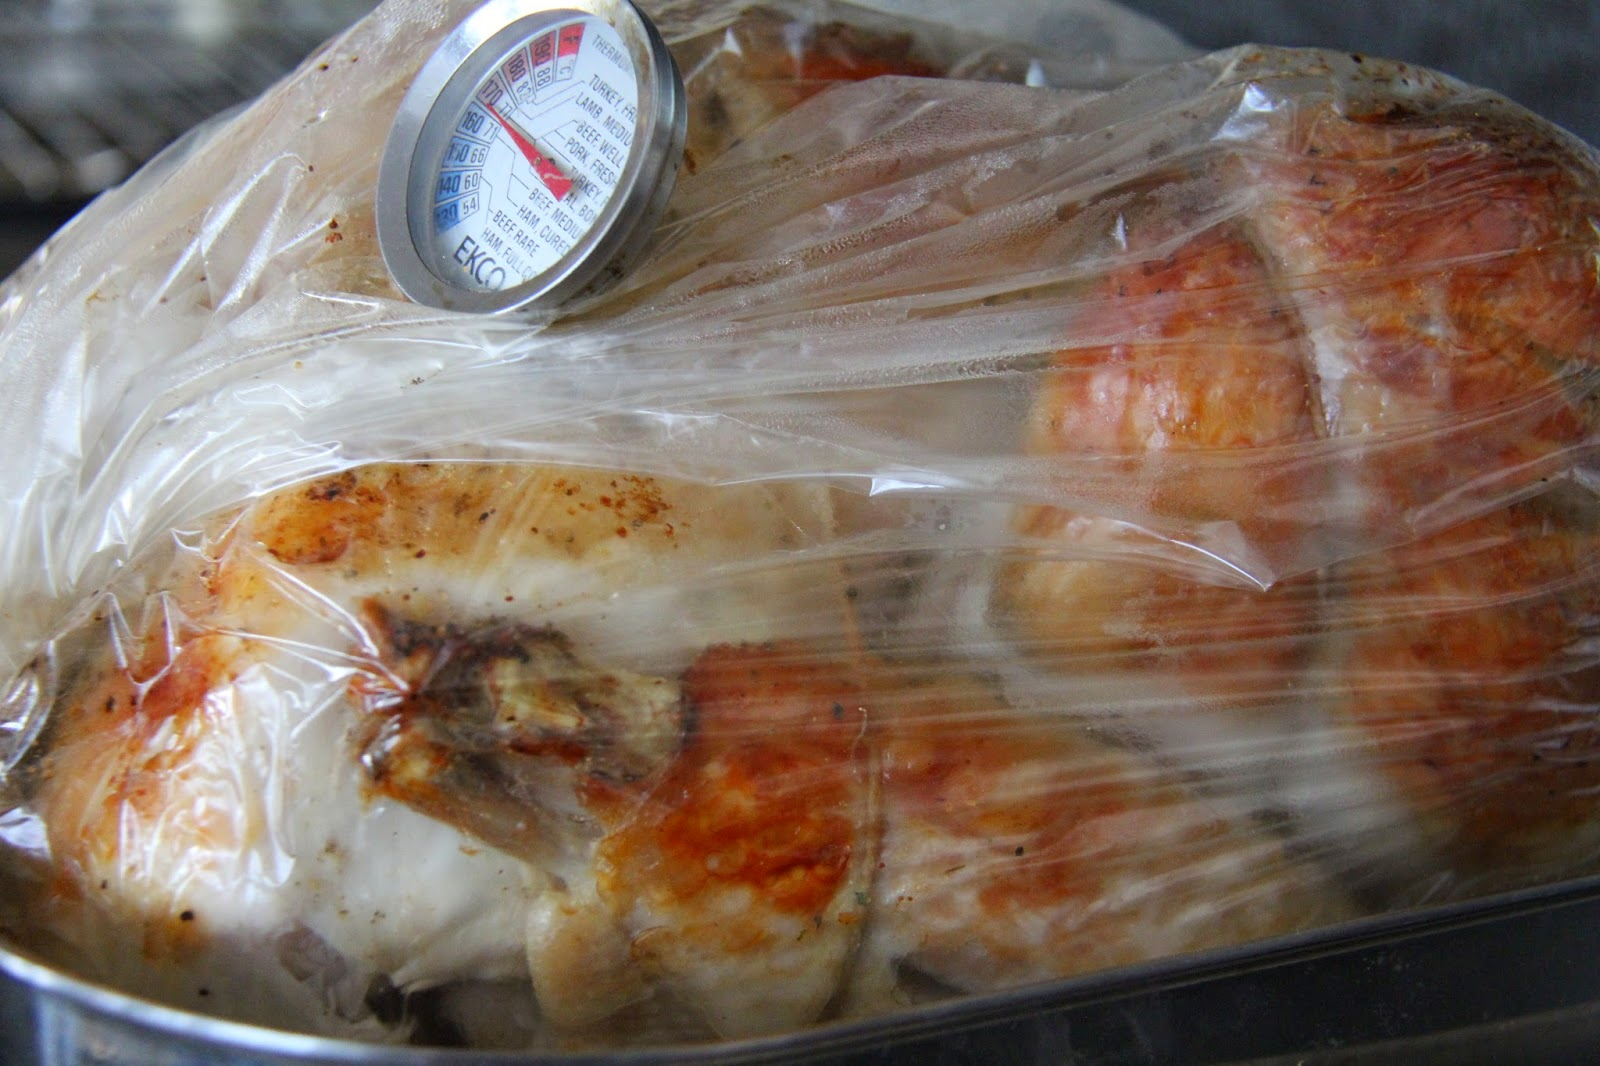 Turkey breast in a roasting bag